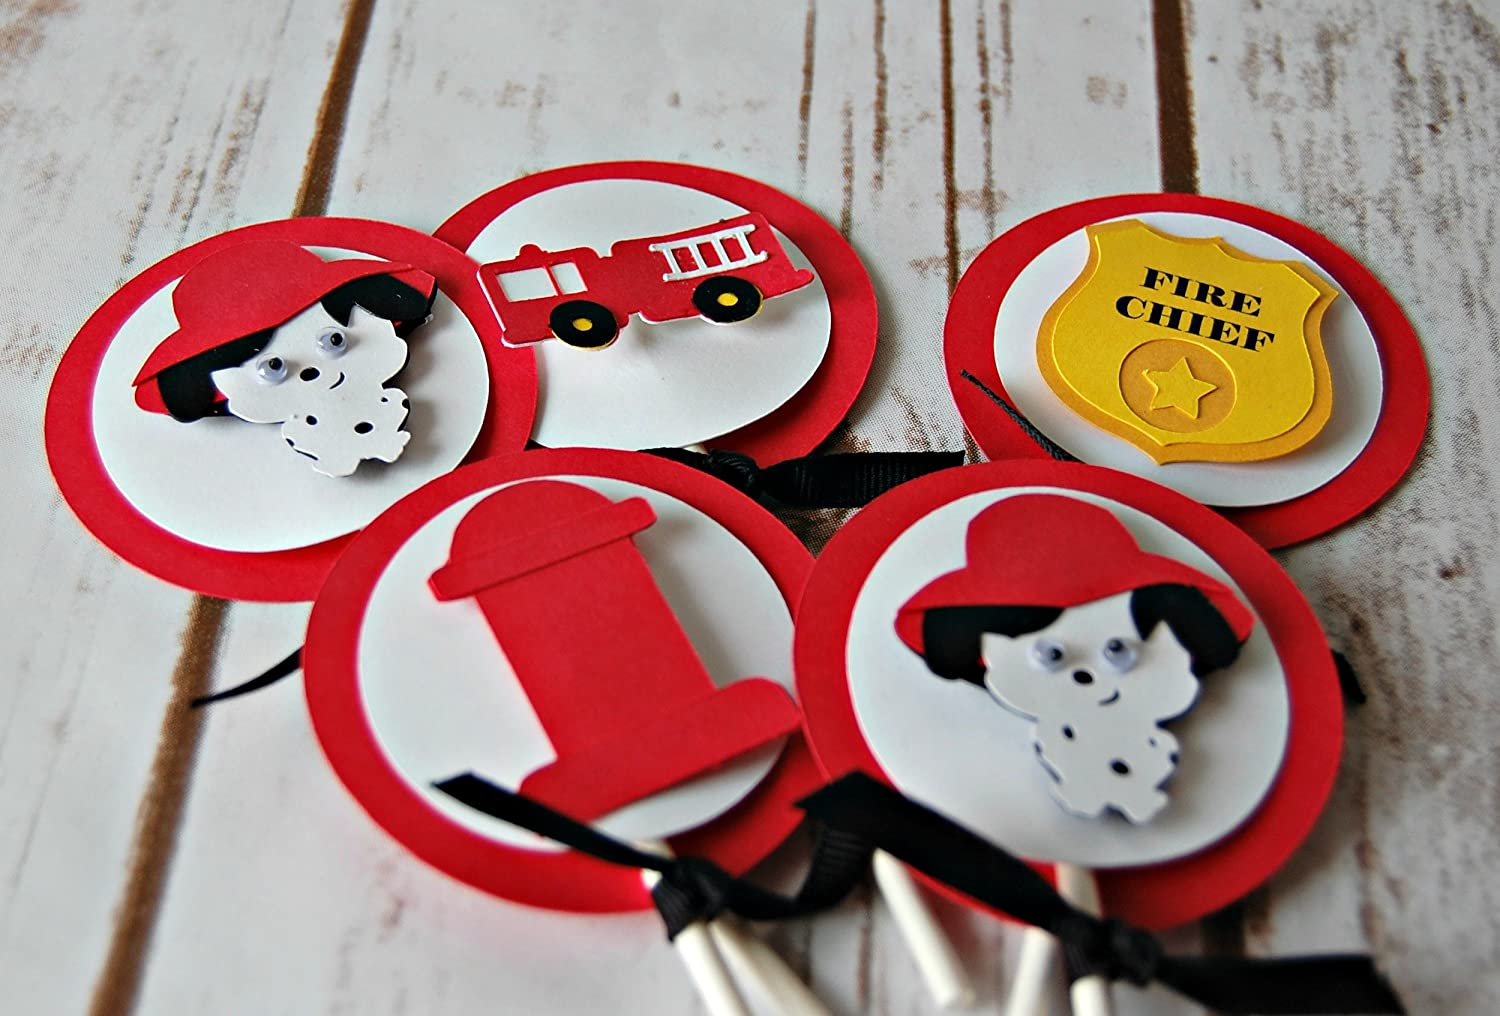 Firefighter Cupcake Decorations Amazoncom Firefighter Birthday Party Cupcake Toppers Set Of 24